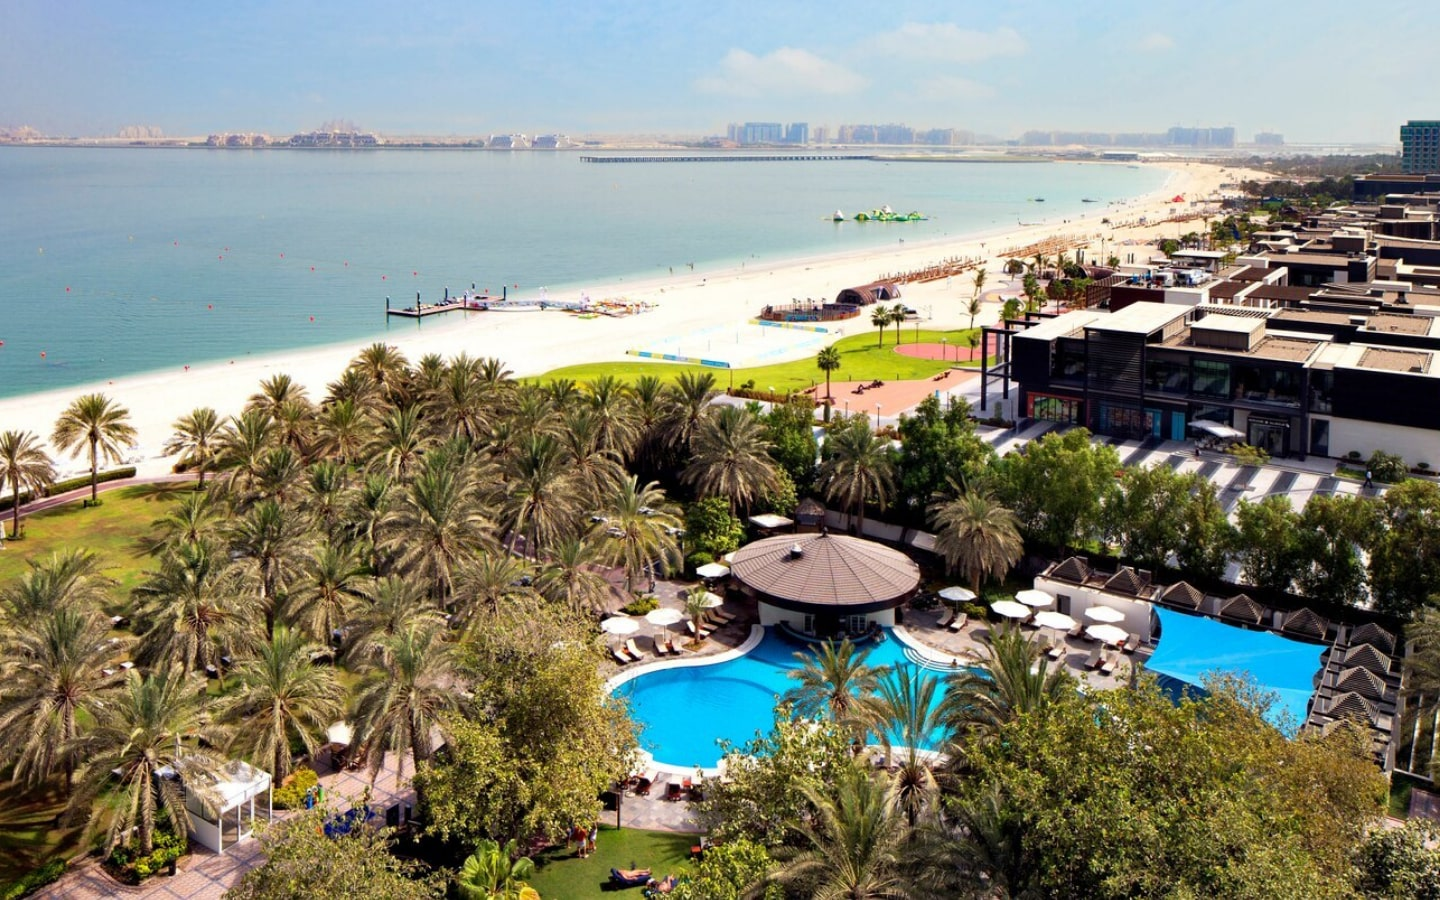 View of Sheraton JBR beach and facilities, one of the top JBR hotels with private beach